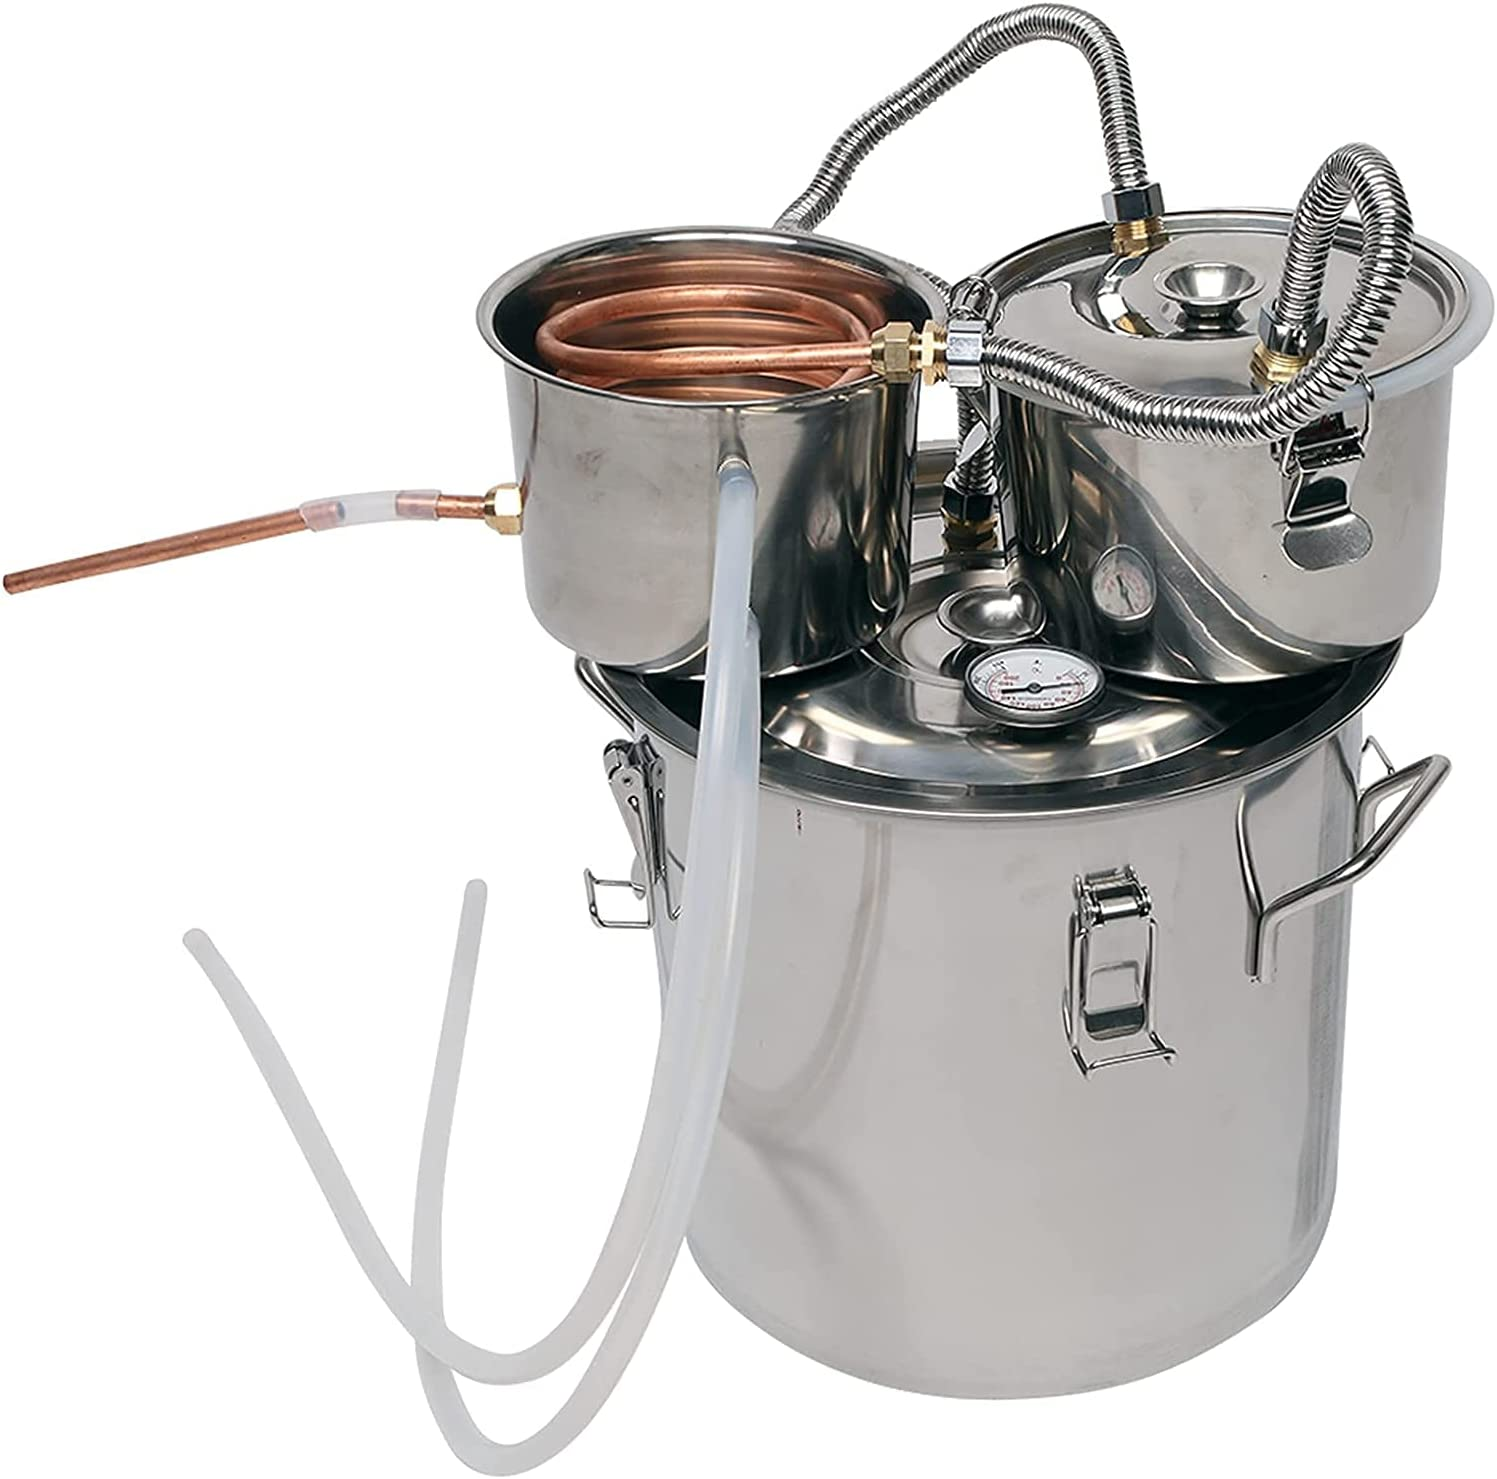 Zholuzl Removable Our shop OFFers the best service 5 Gallon Three 20L 100% quality warranty! Barrels Wat Multifunctional